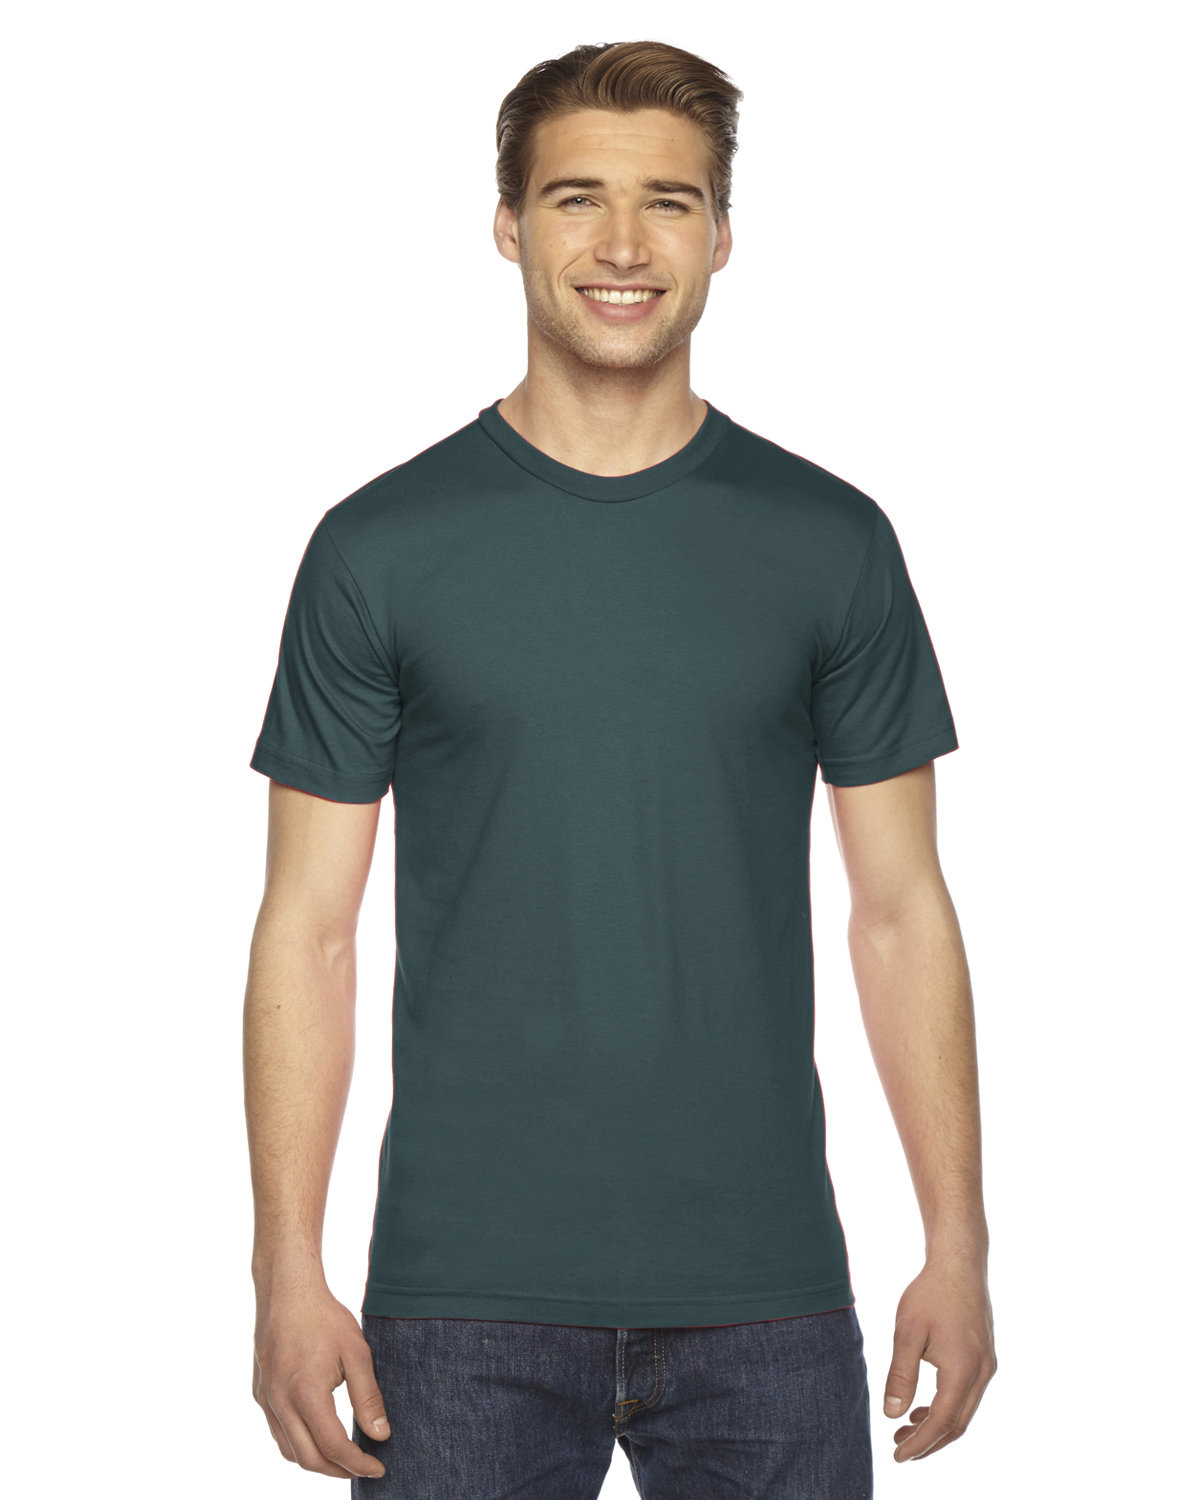 American Apparel Unisex Fine Jersey USA Made T-Shirt FOREST